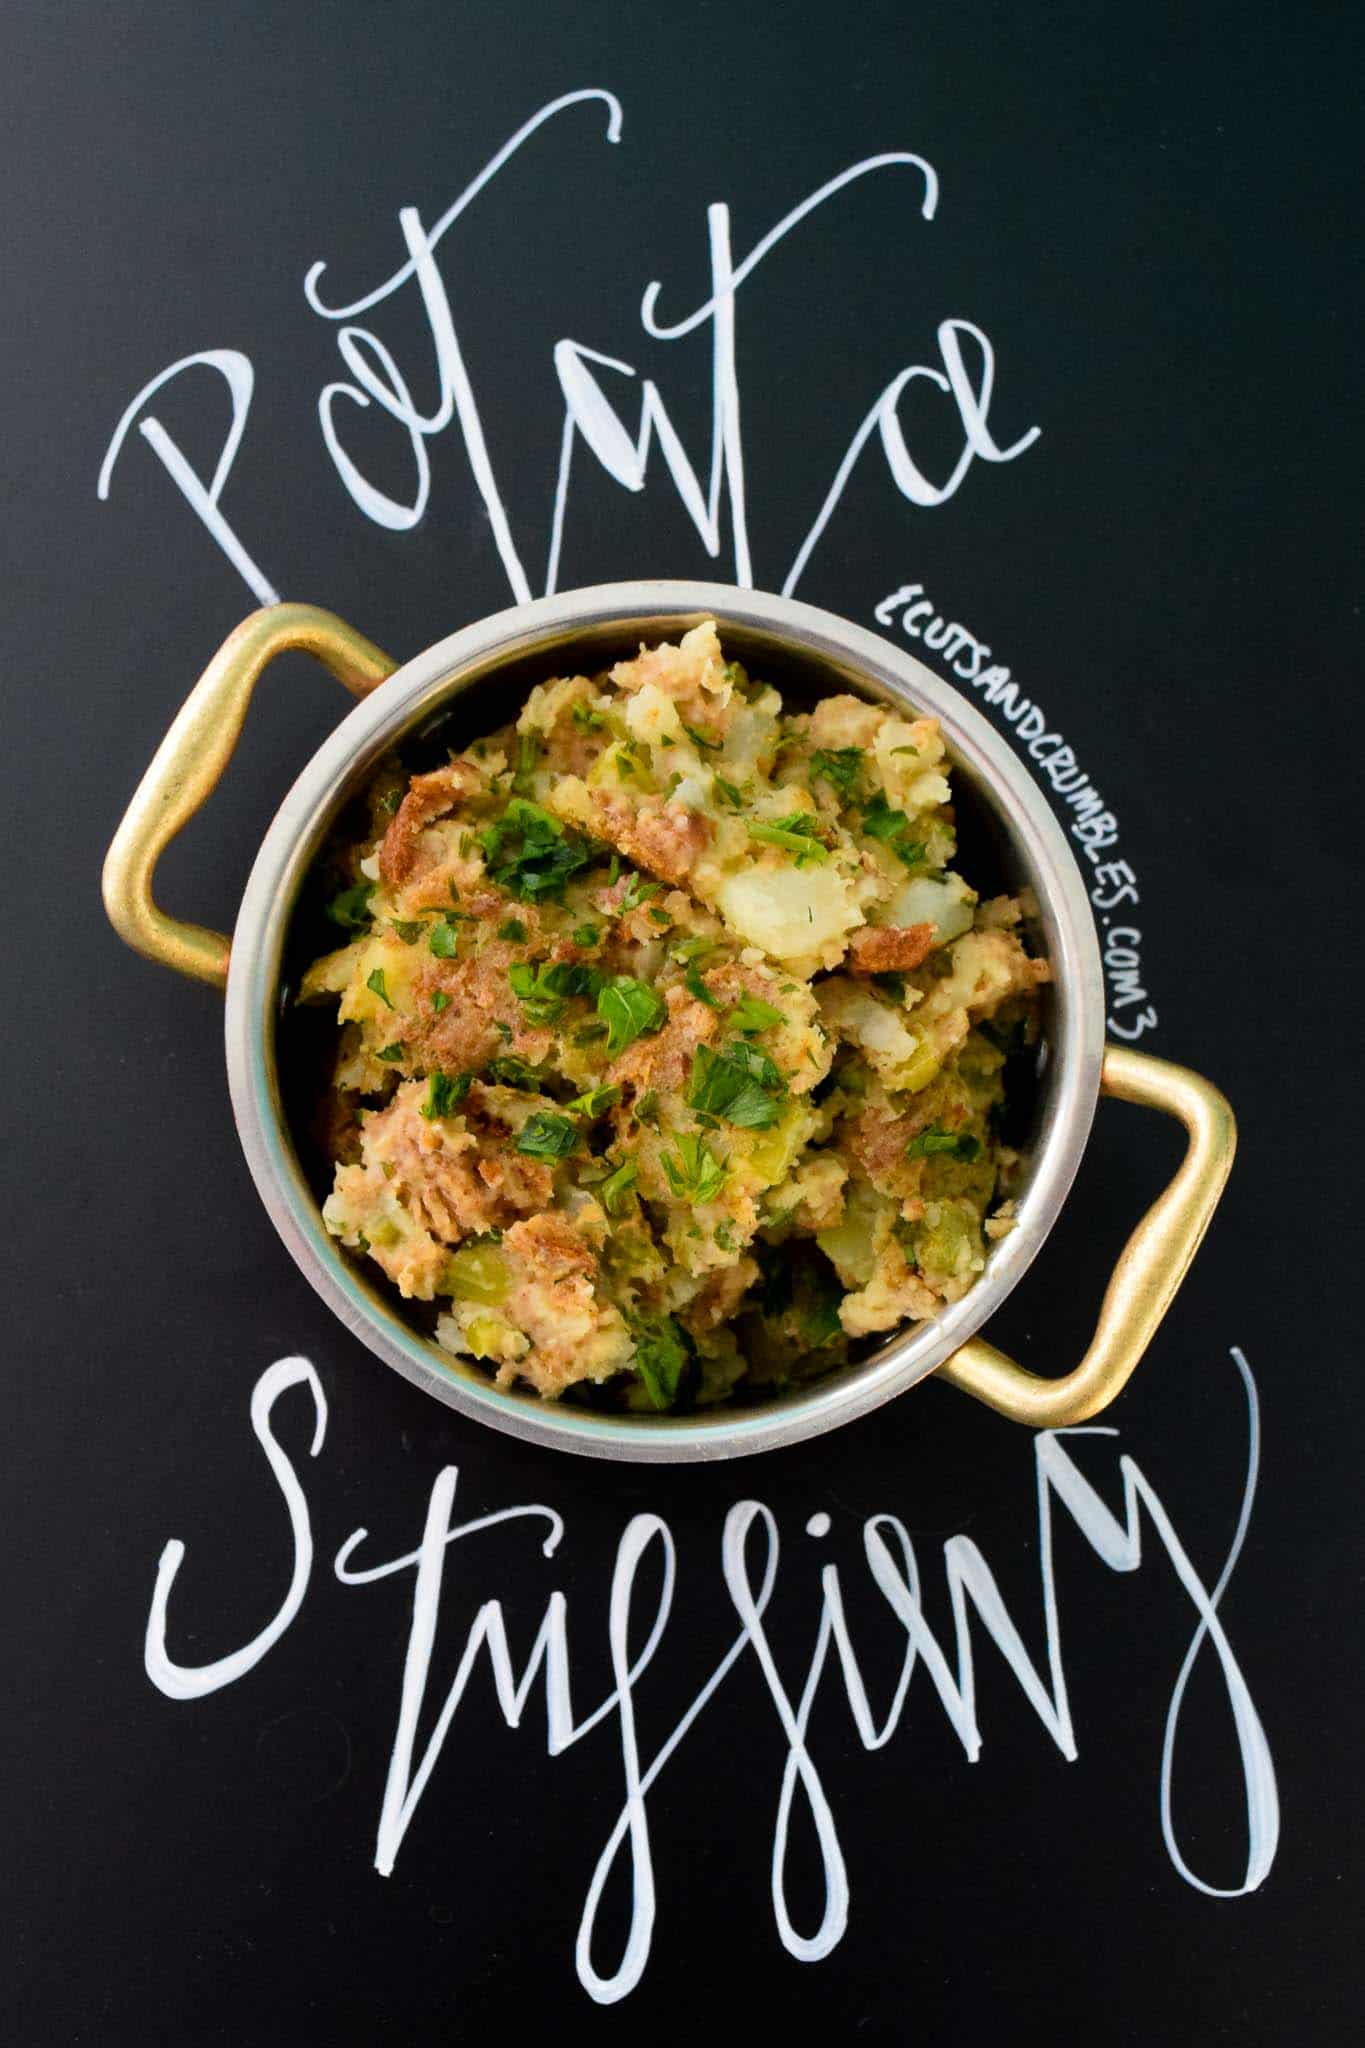 Potato Stuffing with title written on chalkboard